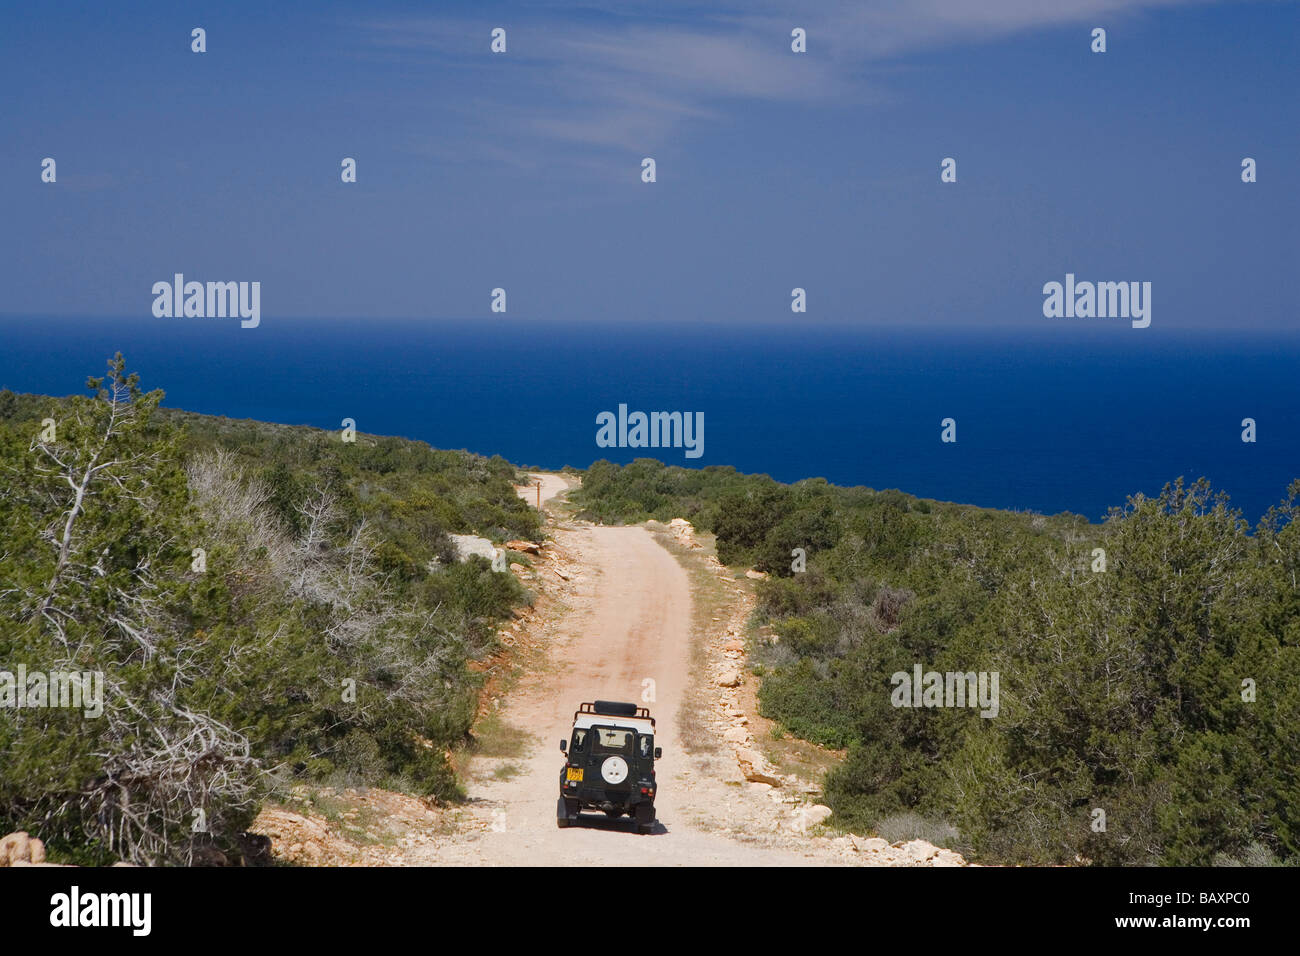 Jalos Activ Land Rover tour, Offroad, Akamas Nature Reserve Park, South Cyprus, Cyprus - Stock Image